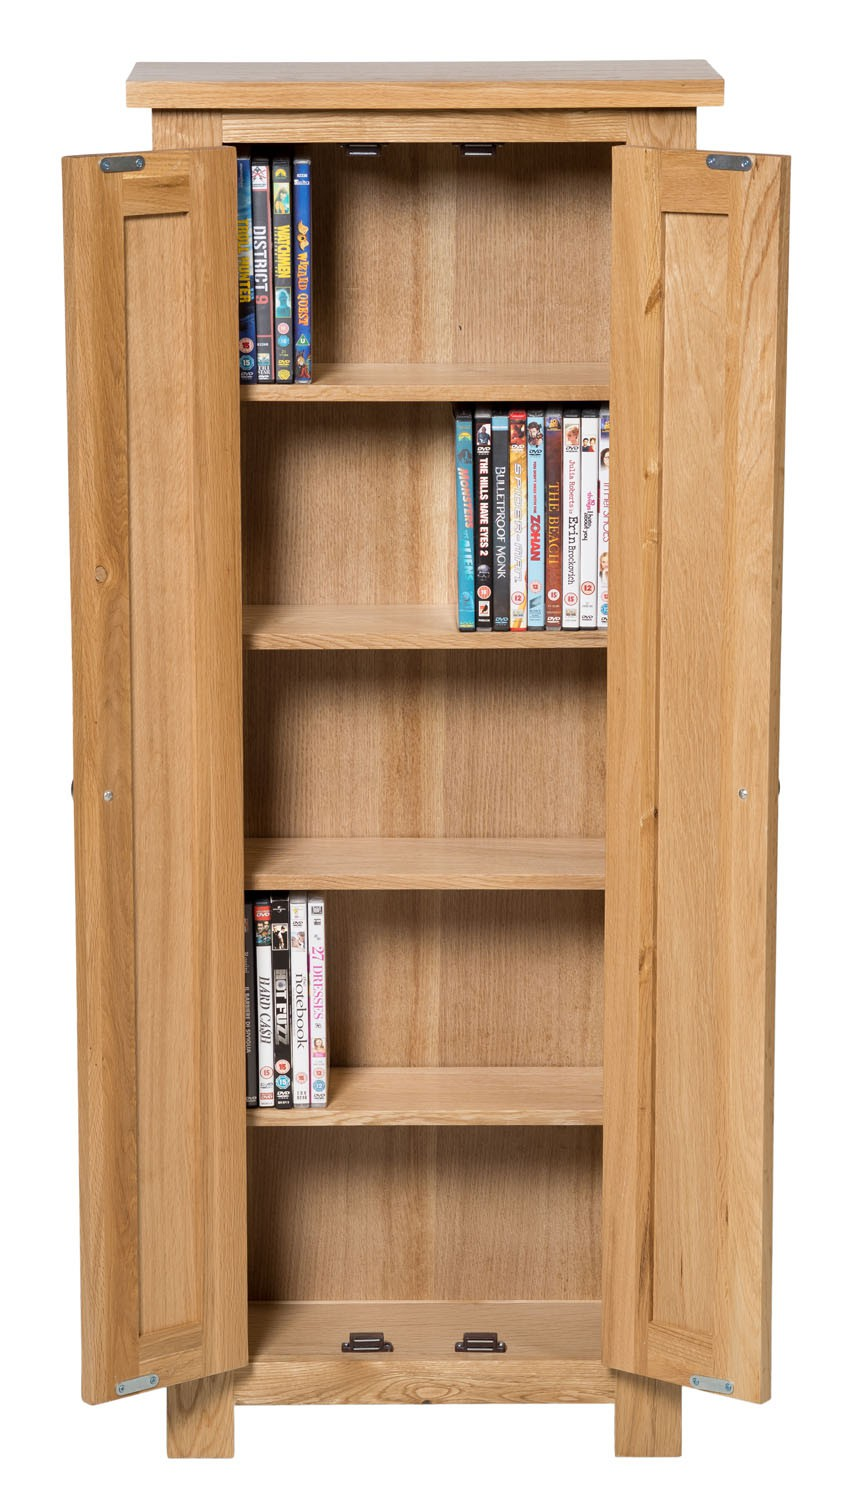 Dvd Storage Cabinet ~ Waverly oak door dvd storage cupboard cabinet hallowood